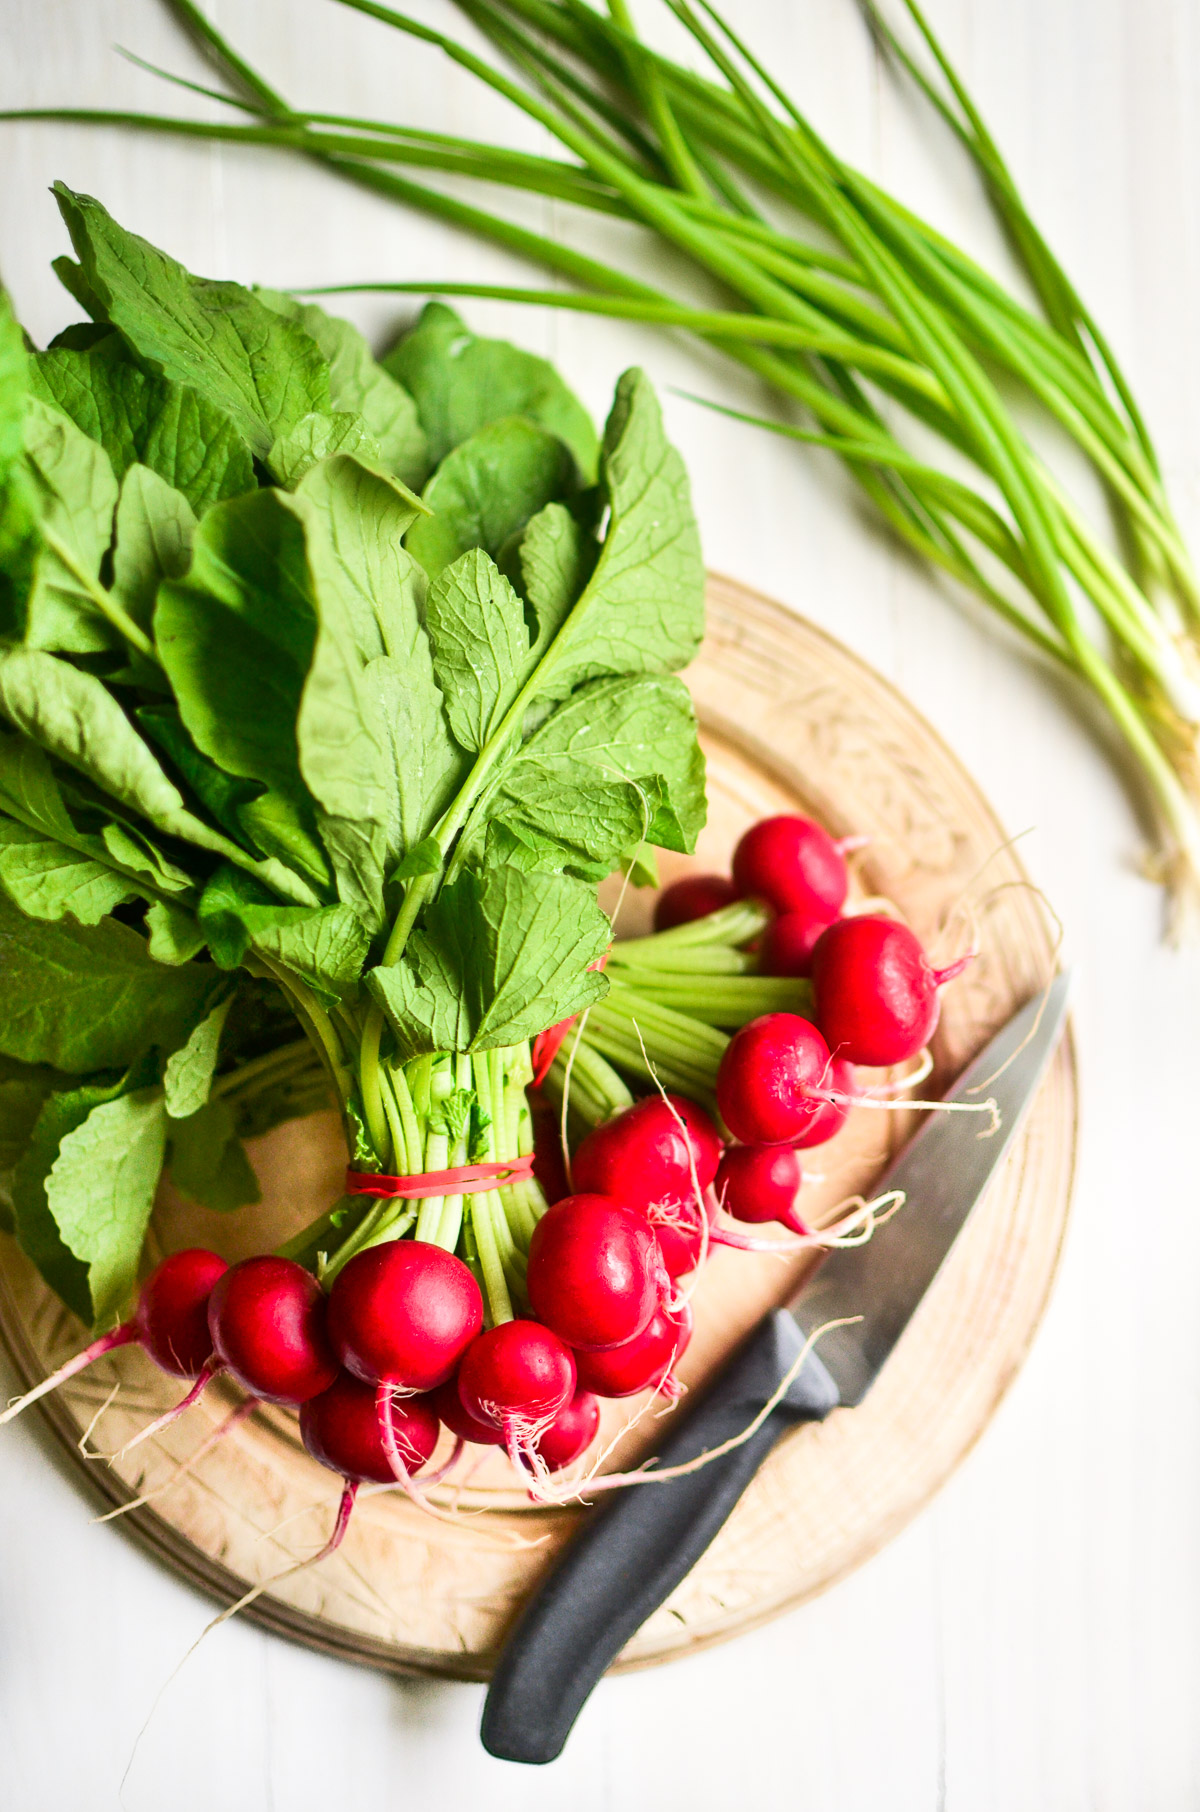 A bunch of fresh red spring radishes on a cutting board with a knife